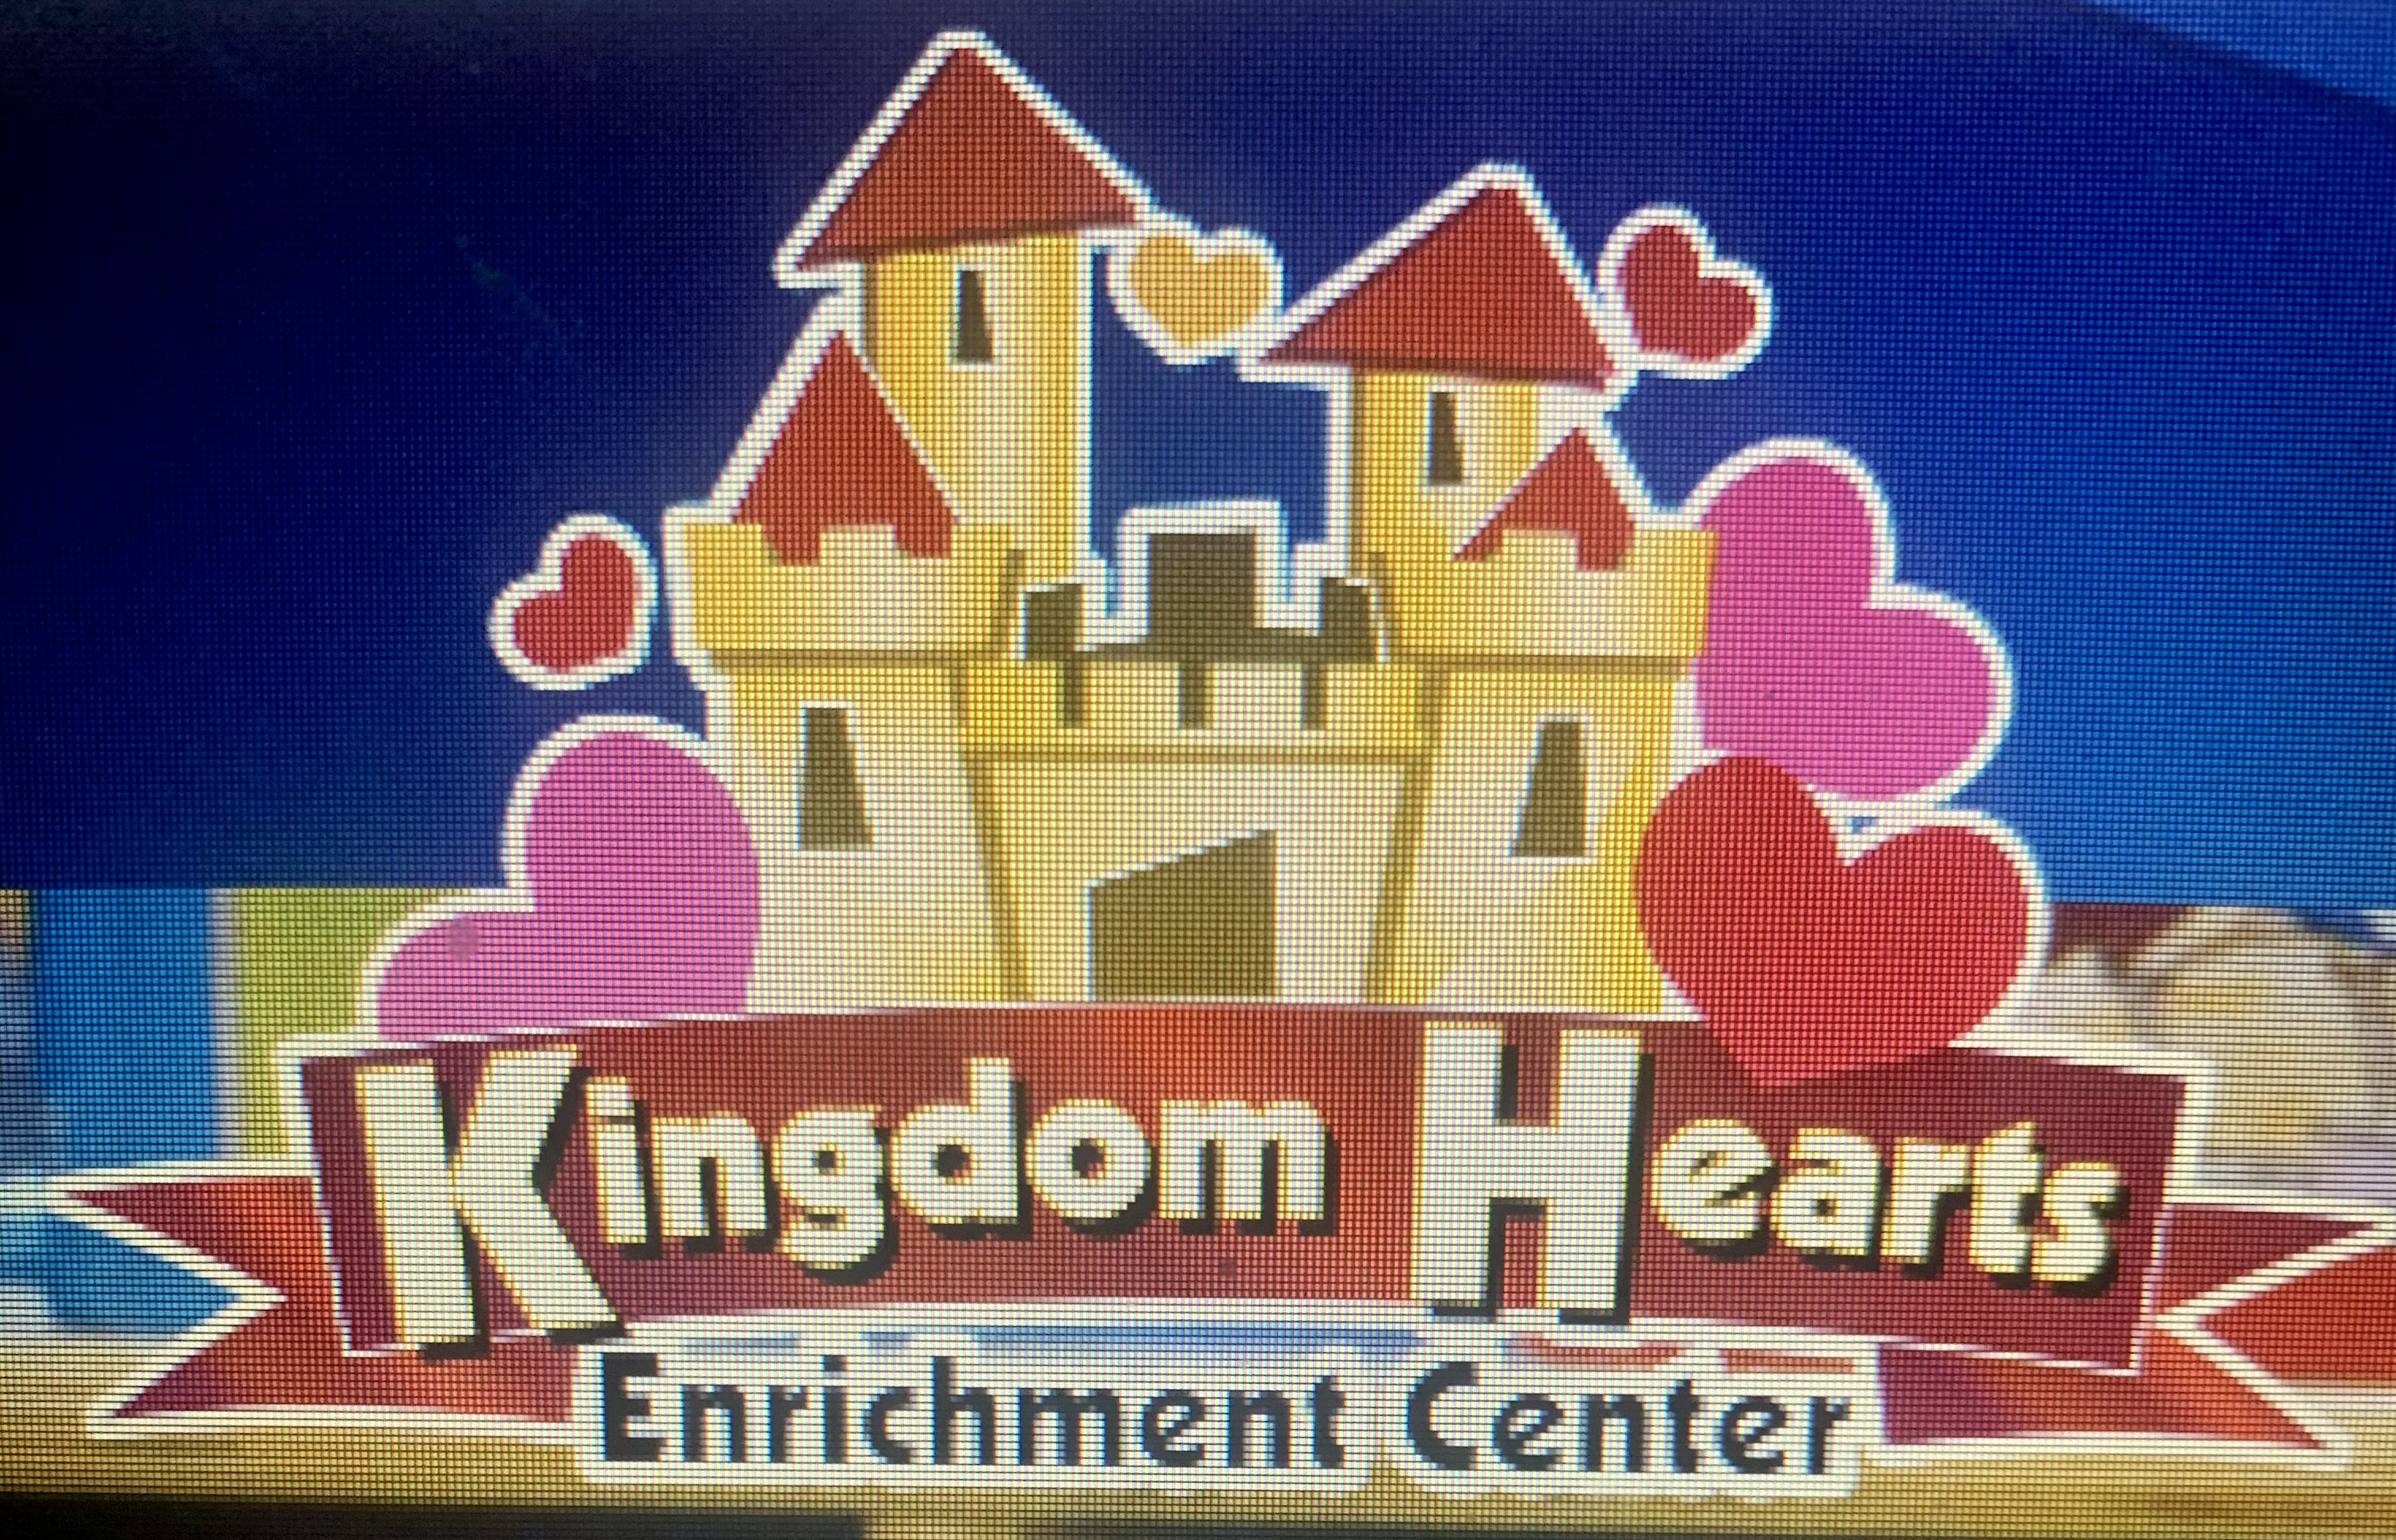 Kingdom Hearts Enrichment Center Our Mission is to teach and empower young children in a safe, fun, learning environment through many positive experiences and activities.